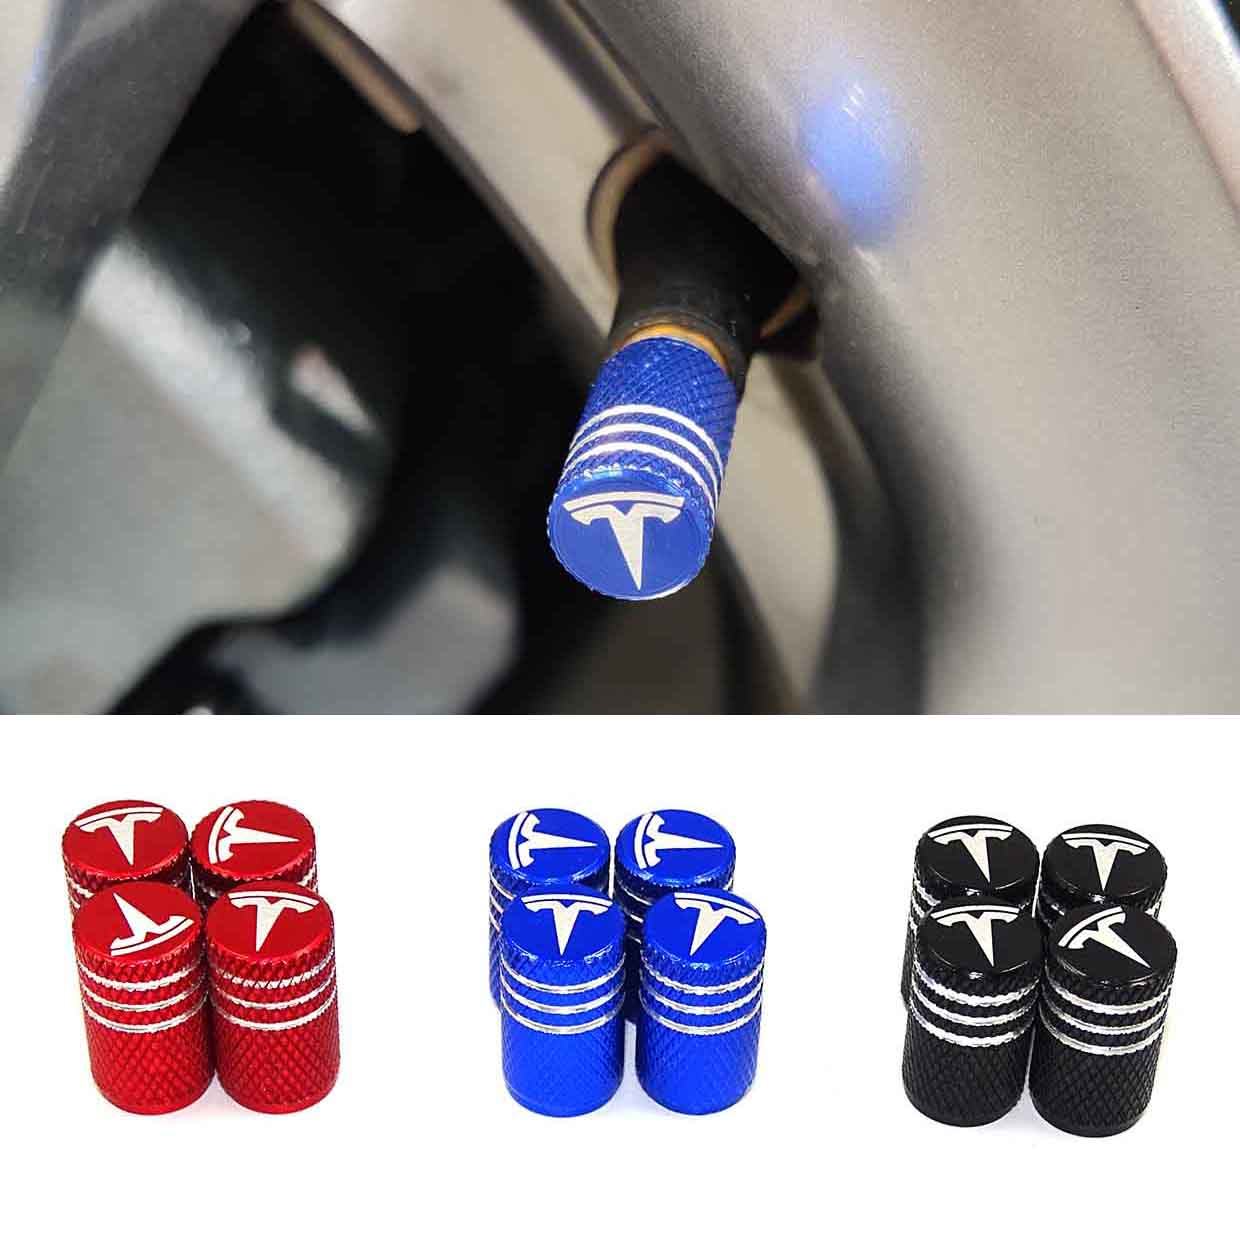 High Quality Aluminum Alloy Car Tire Wheel Valve Cap Cover Logo Valve Mouth Styling Accessorie For Tesla Model S Model X Model 3